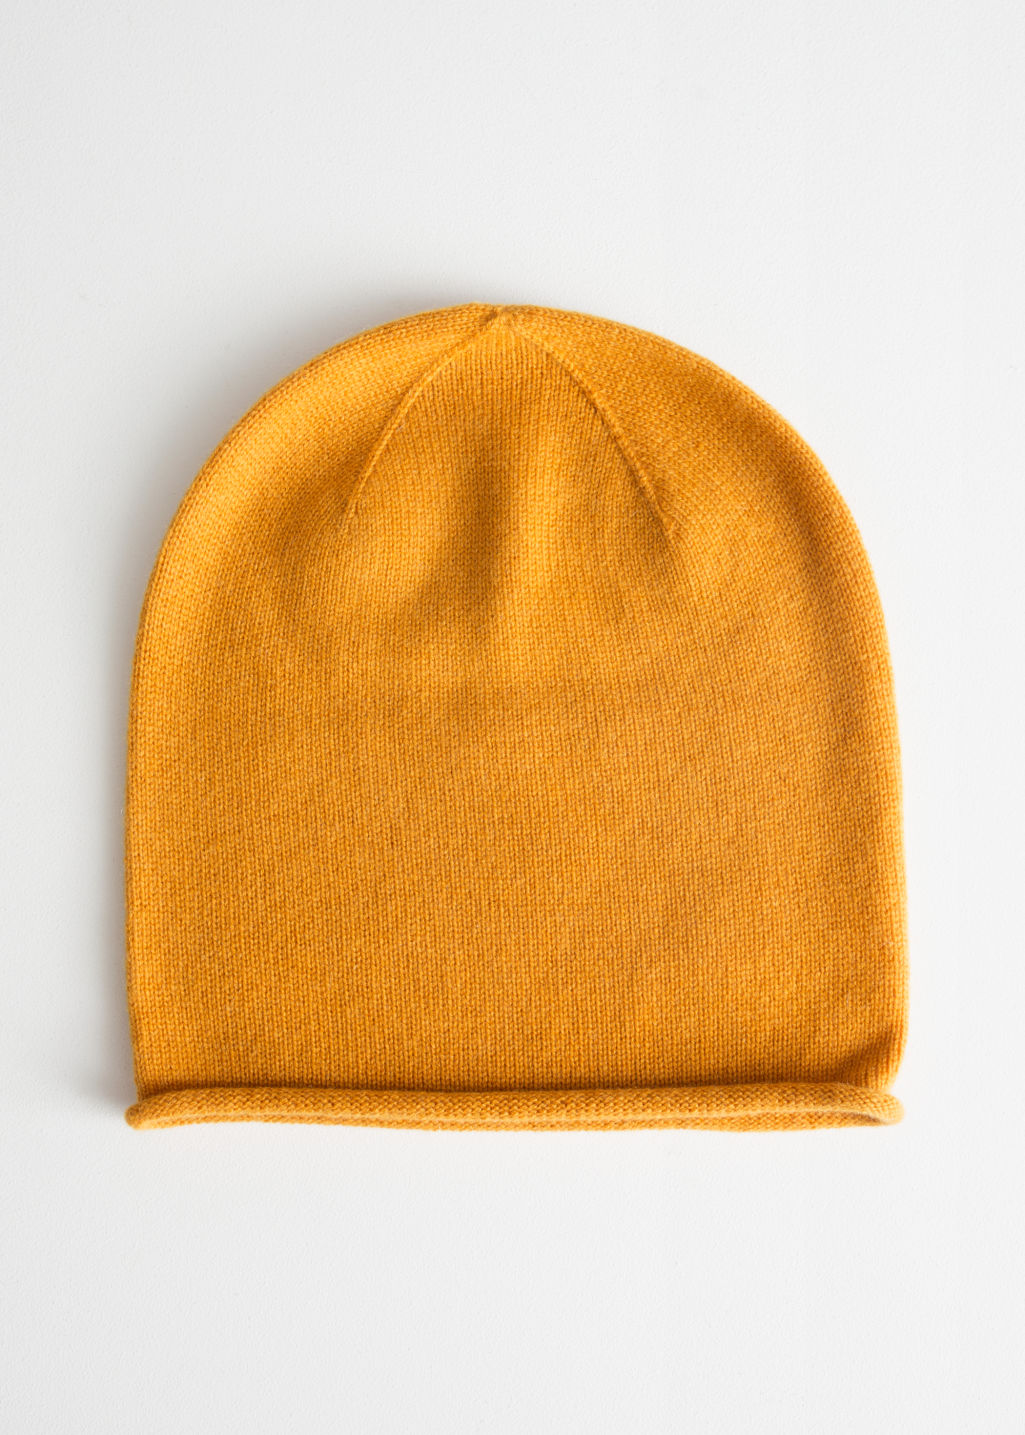 Cashmere Knit Beanie - Yellow - Beanies -   Other Stories c03453dceca